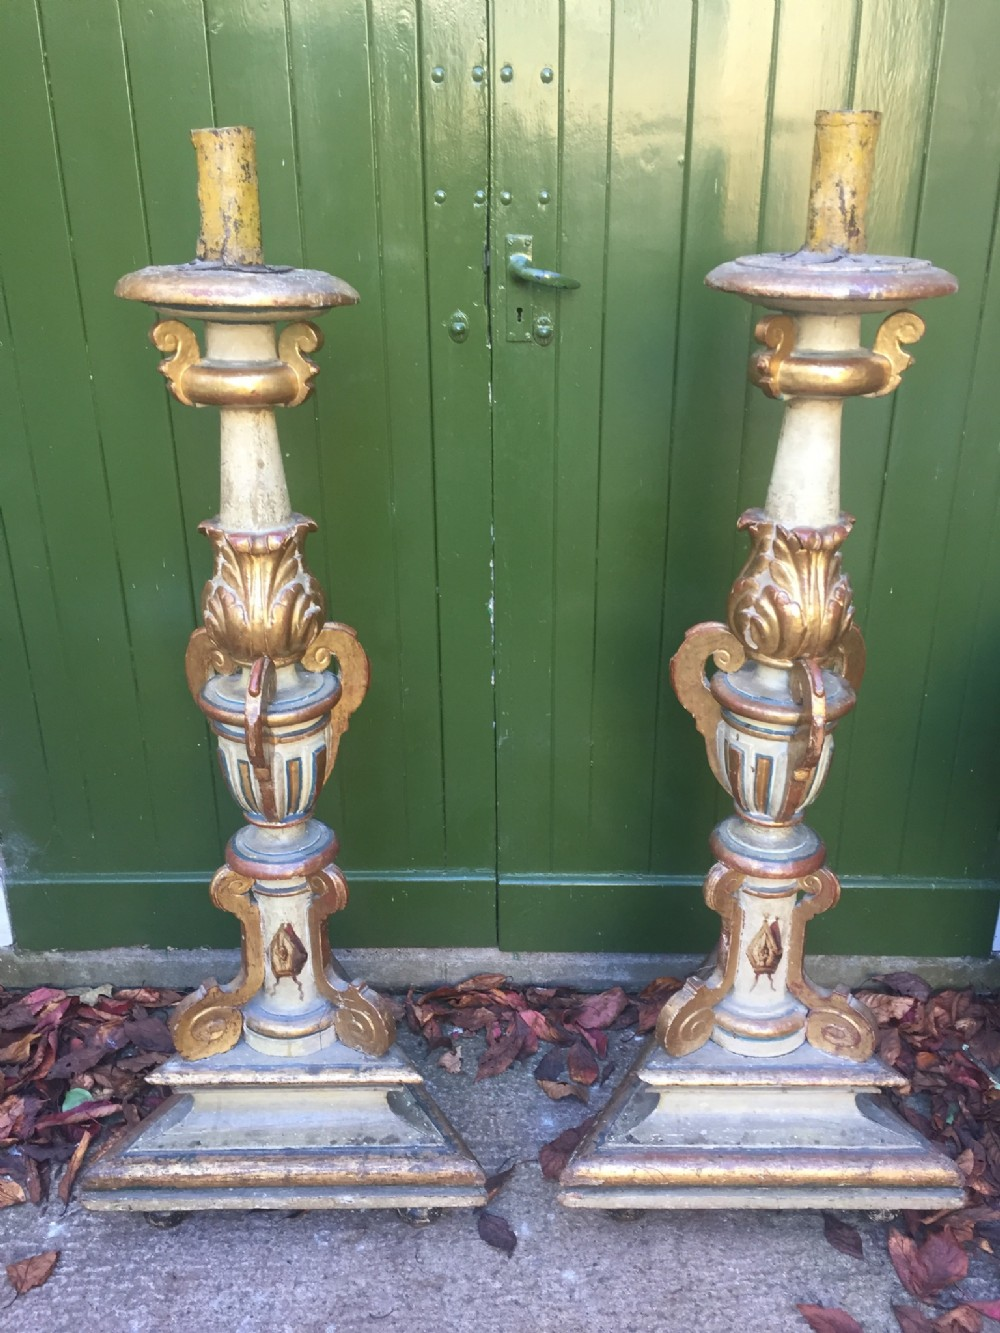 large pair of c18th giltwood decorated baroque style altartype candleholders of impressive proportions